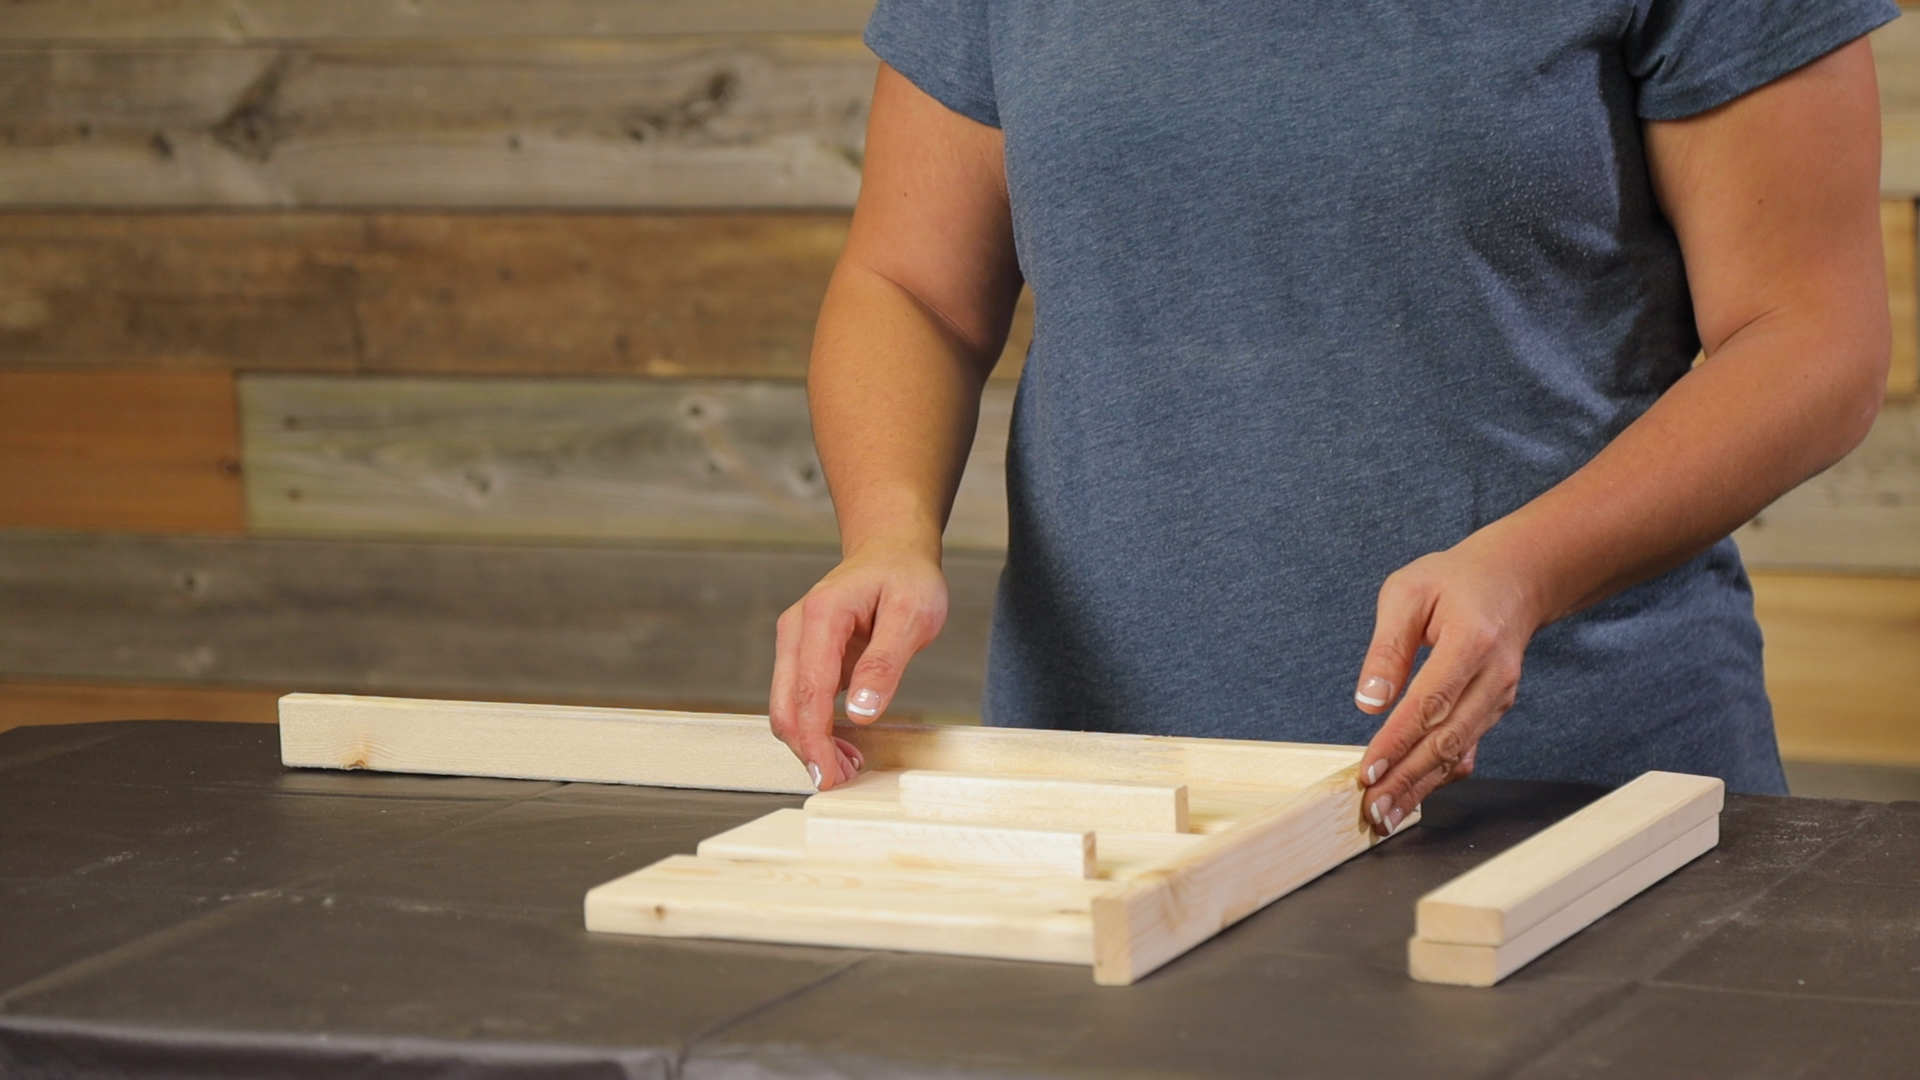 wooden jig is used to set up palette side